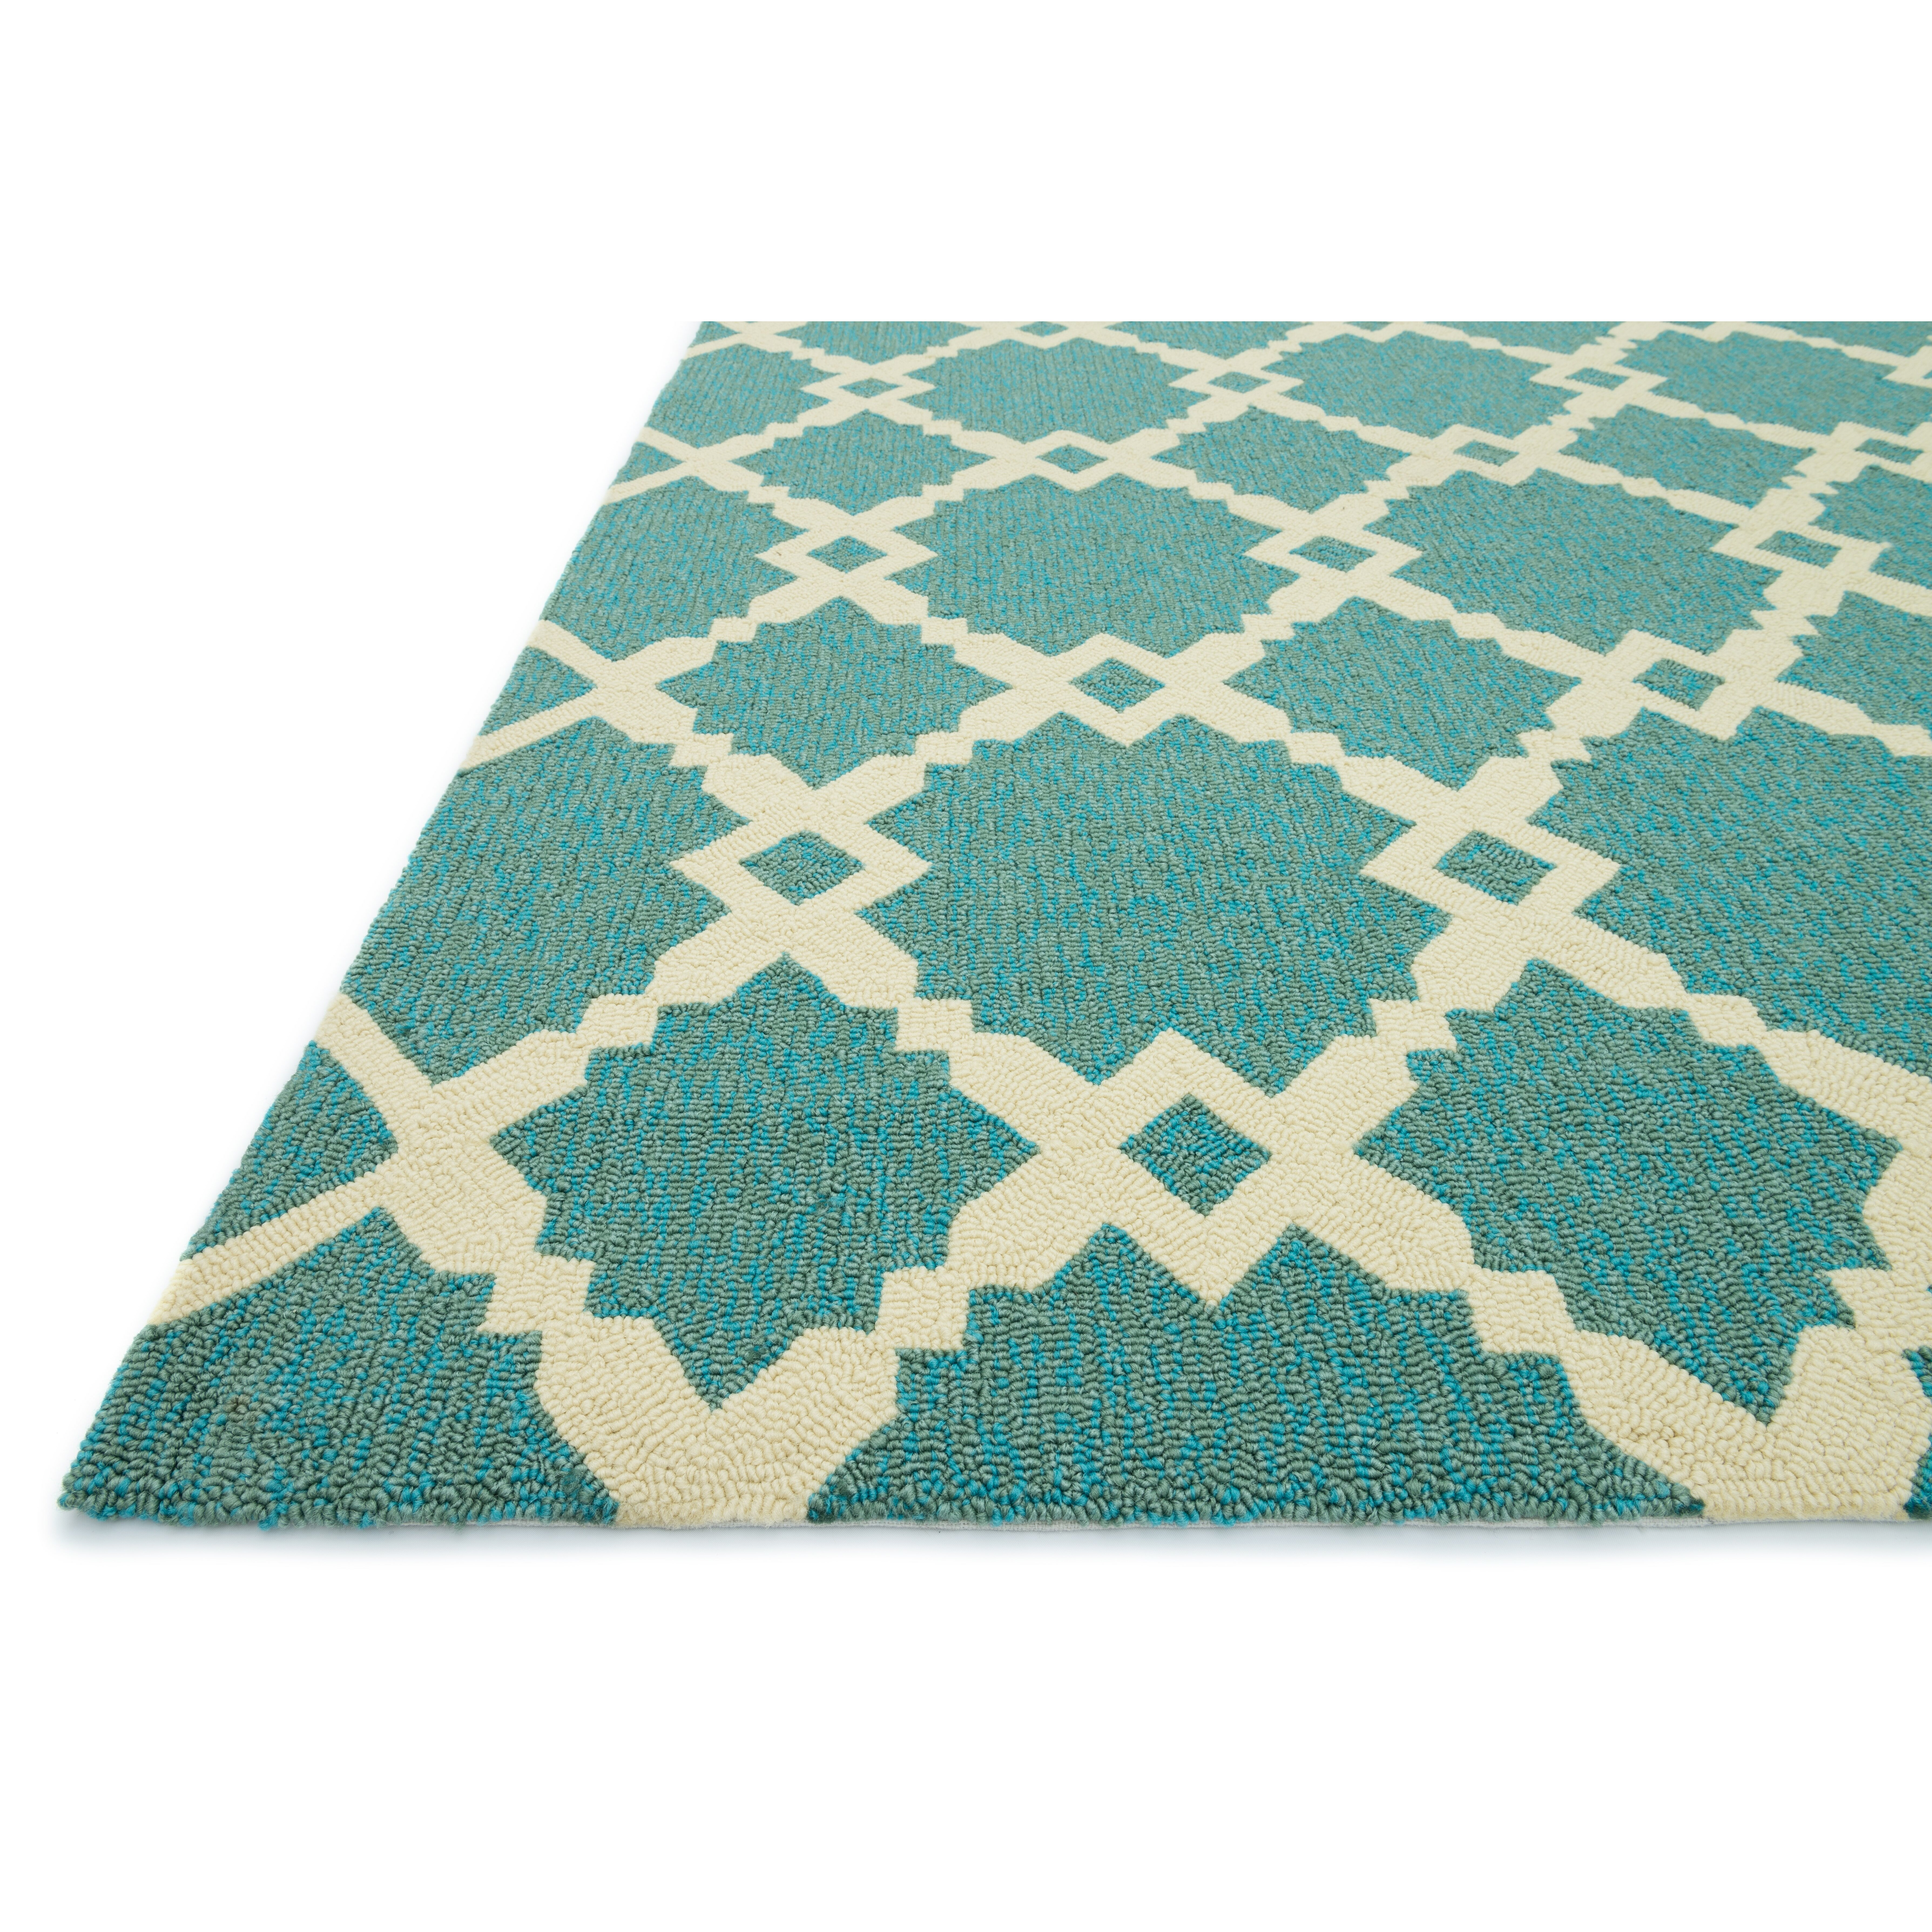 Loloi rugs ventura geometric turquoise ivory indoor for Turquoise area rug